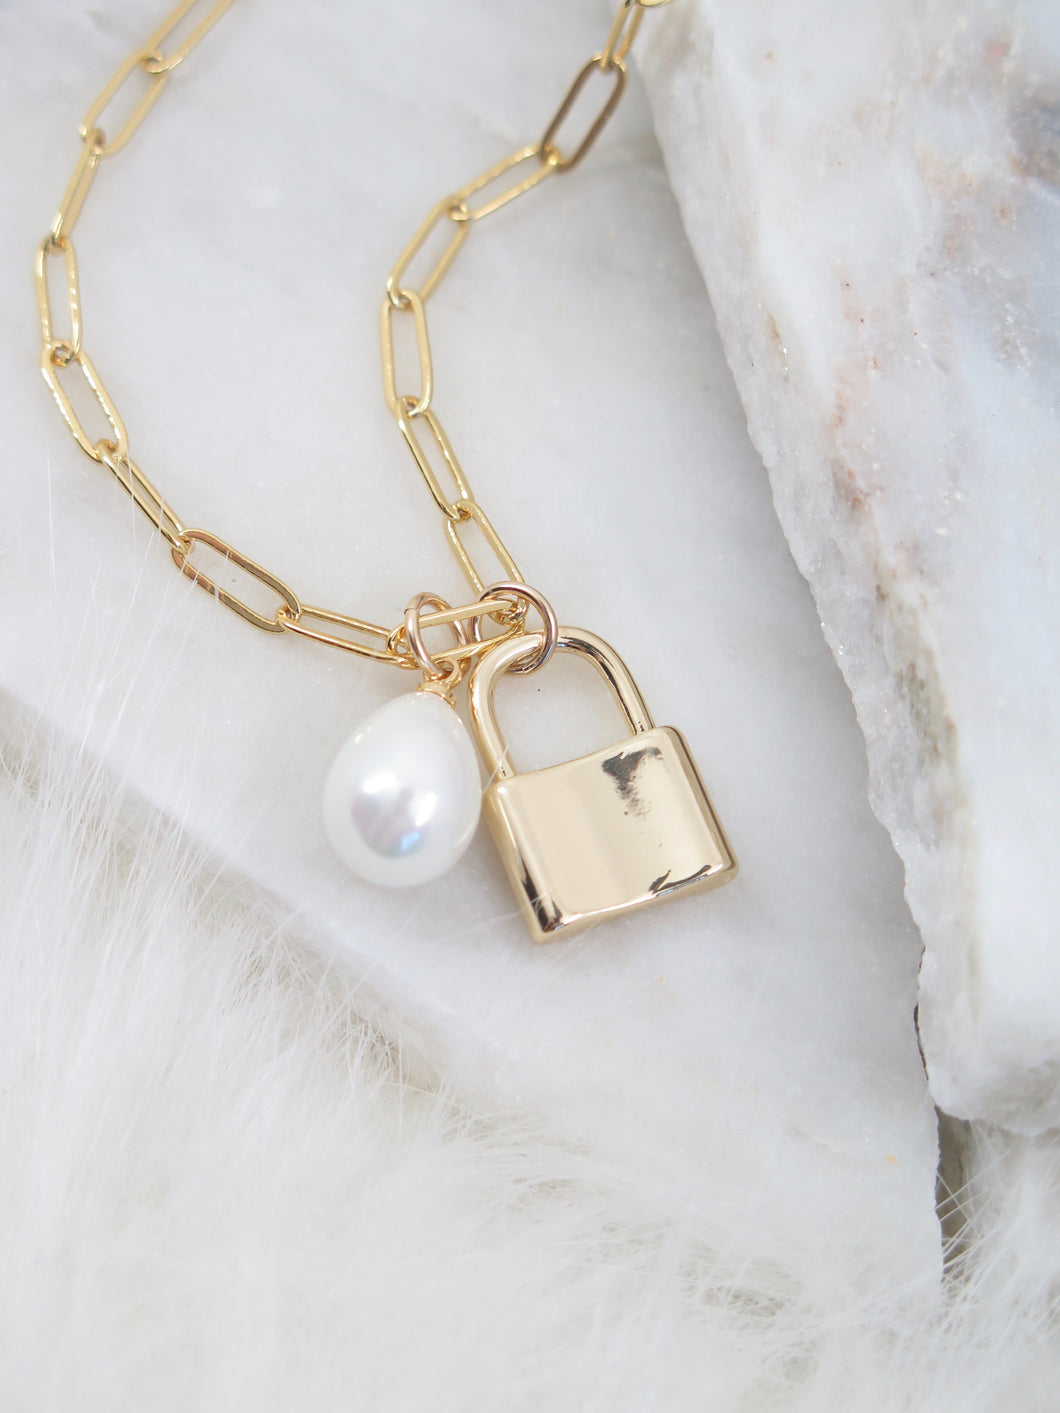 Padlock + Pearl Necklace